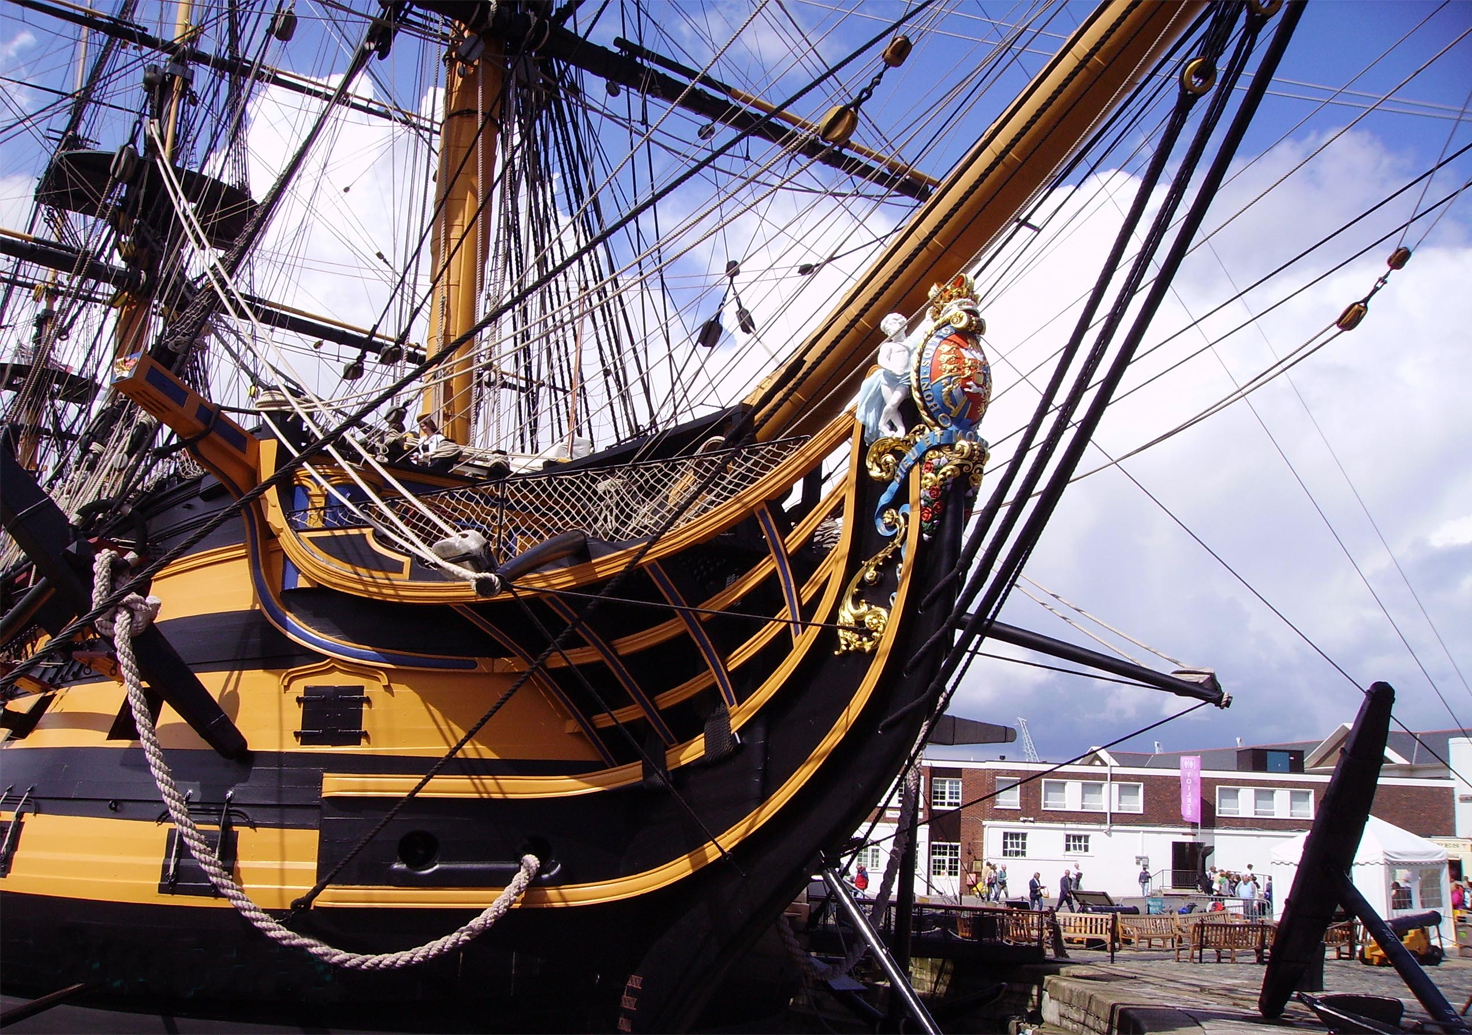 Article Custodianship of HMS Victory changes hands